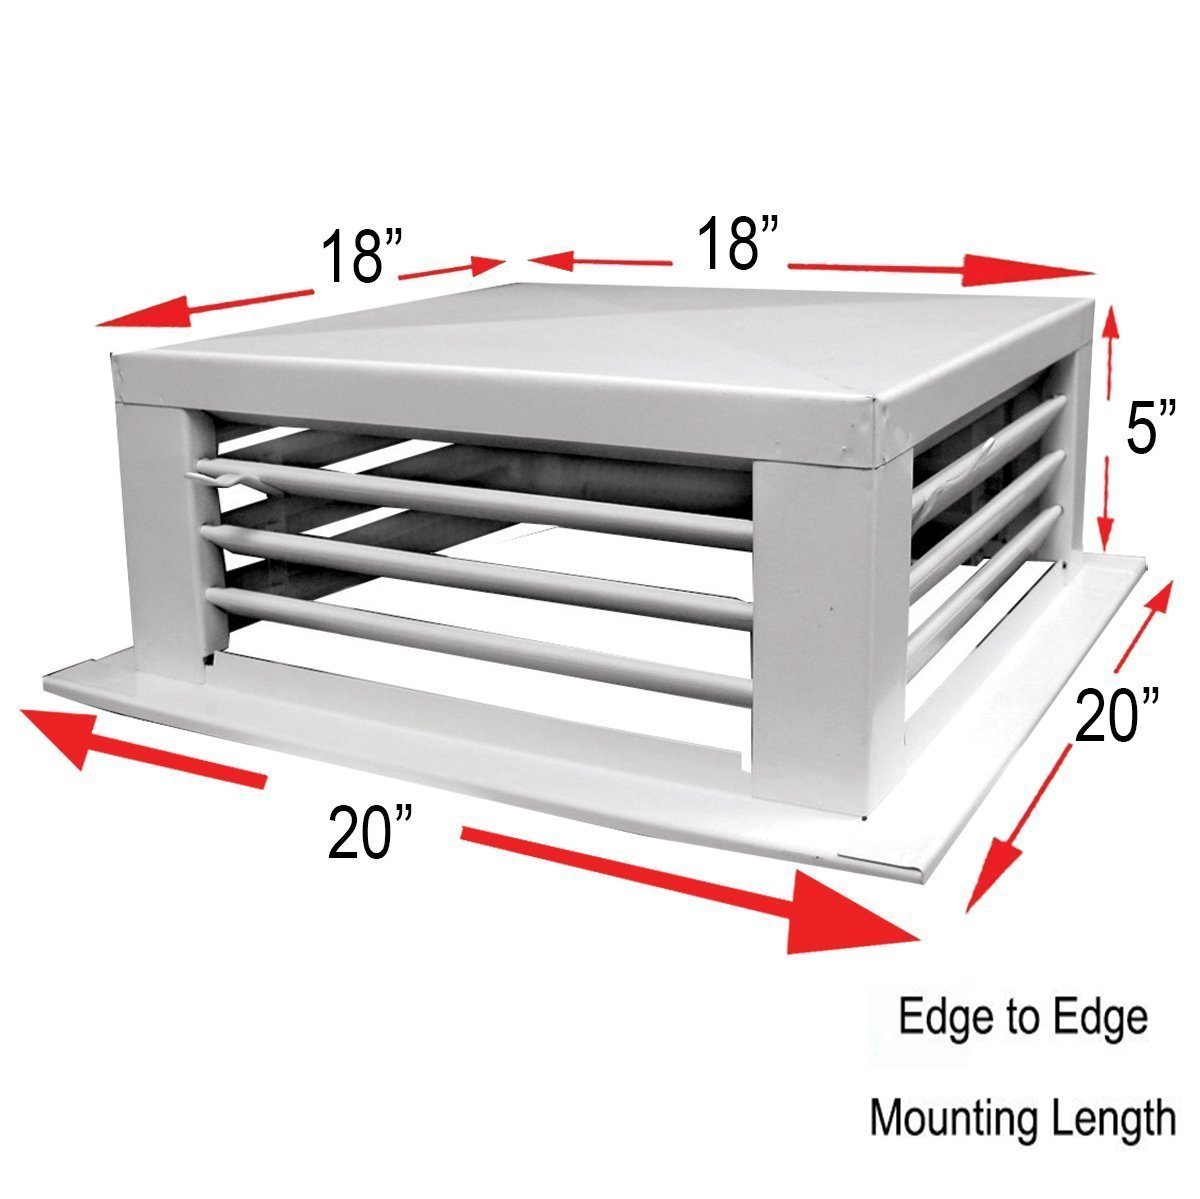 White Powder Coated 4-Way Adjustable Metal Diffuser for Evaporative/Swamp Cooler (18''x18''x5'')